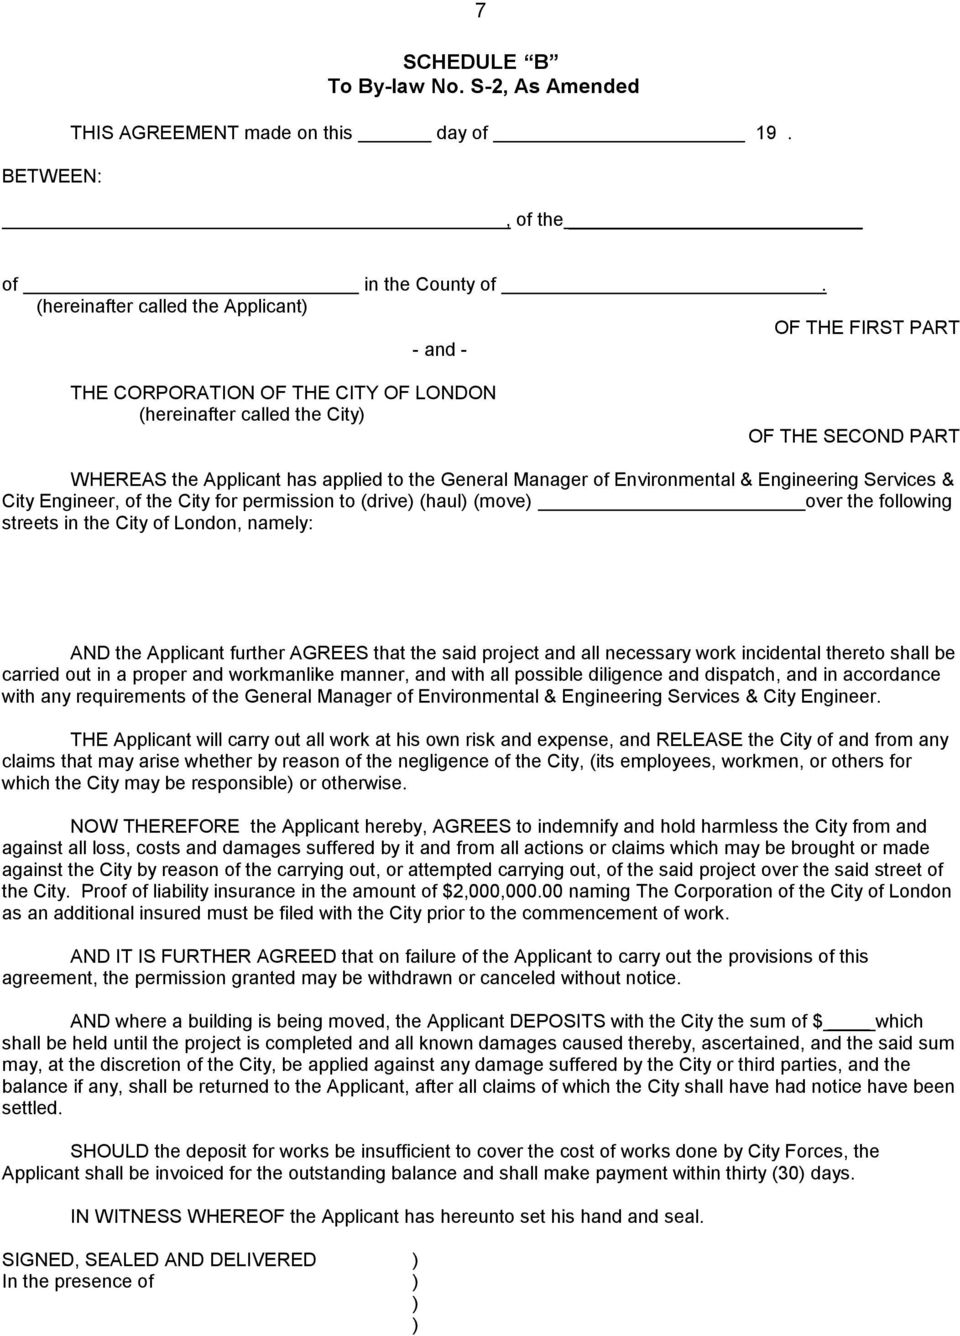 Manager of Environmental & Engineering Services & City Engineer, of the City for permission to (drive) (haul) (move) over the following streets in the City of London, namely: AND the Applicant